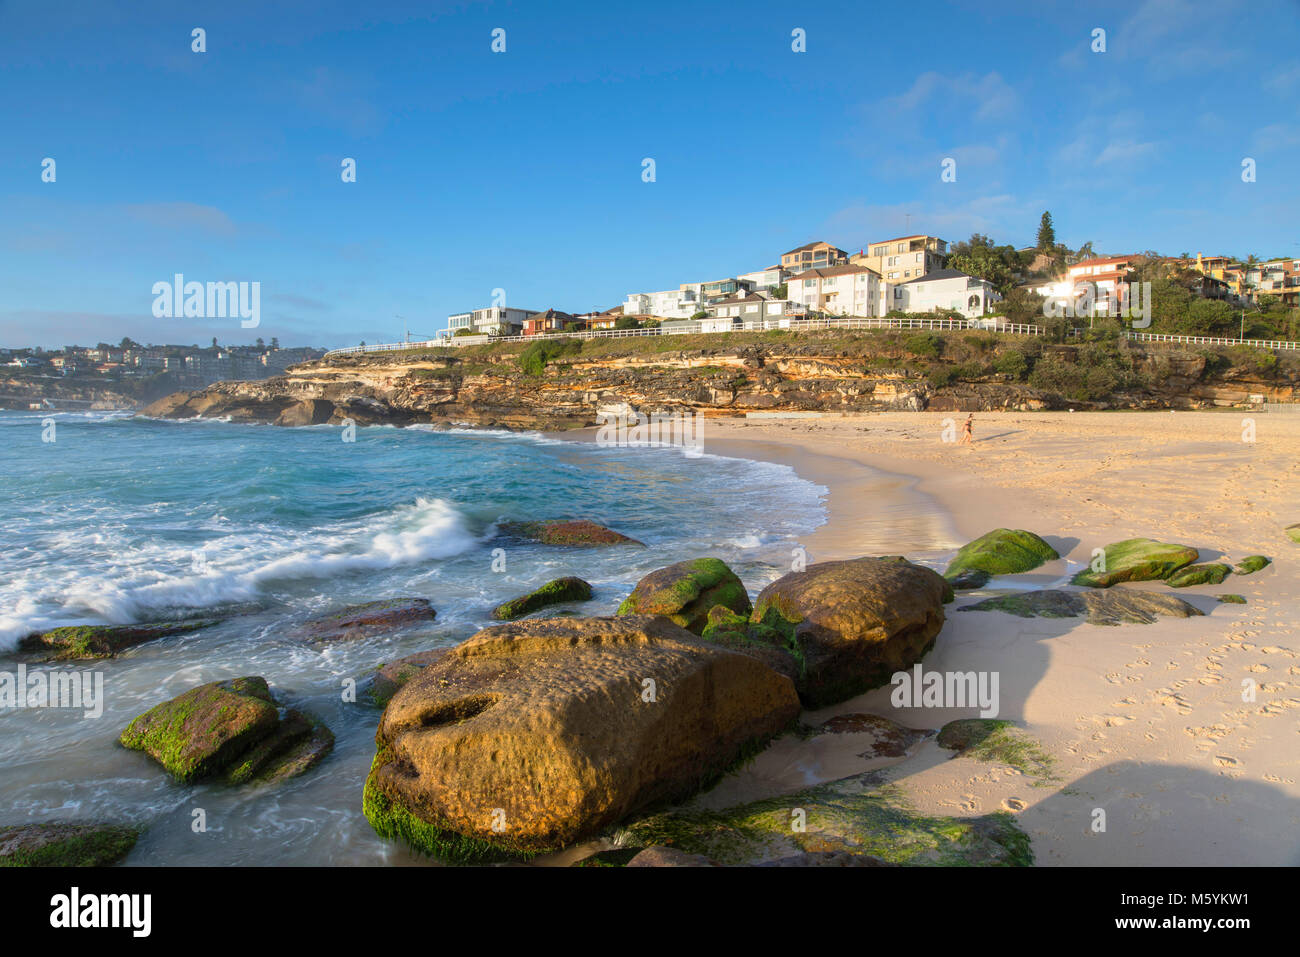 Tamarama Beach, Sydney, New South Wales, Australia - Stock Image